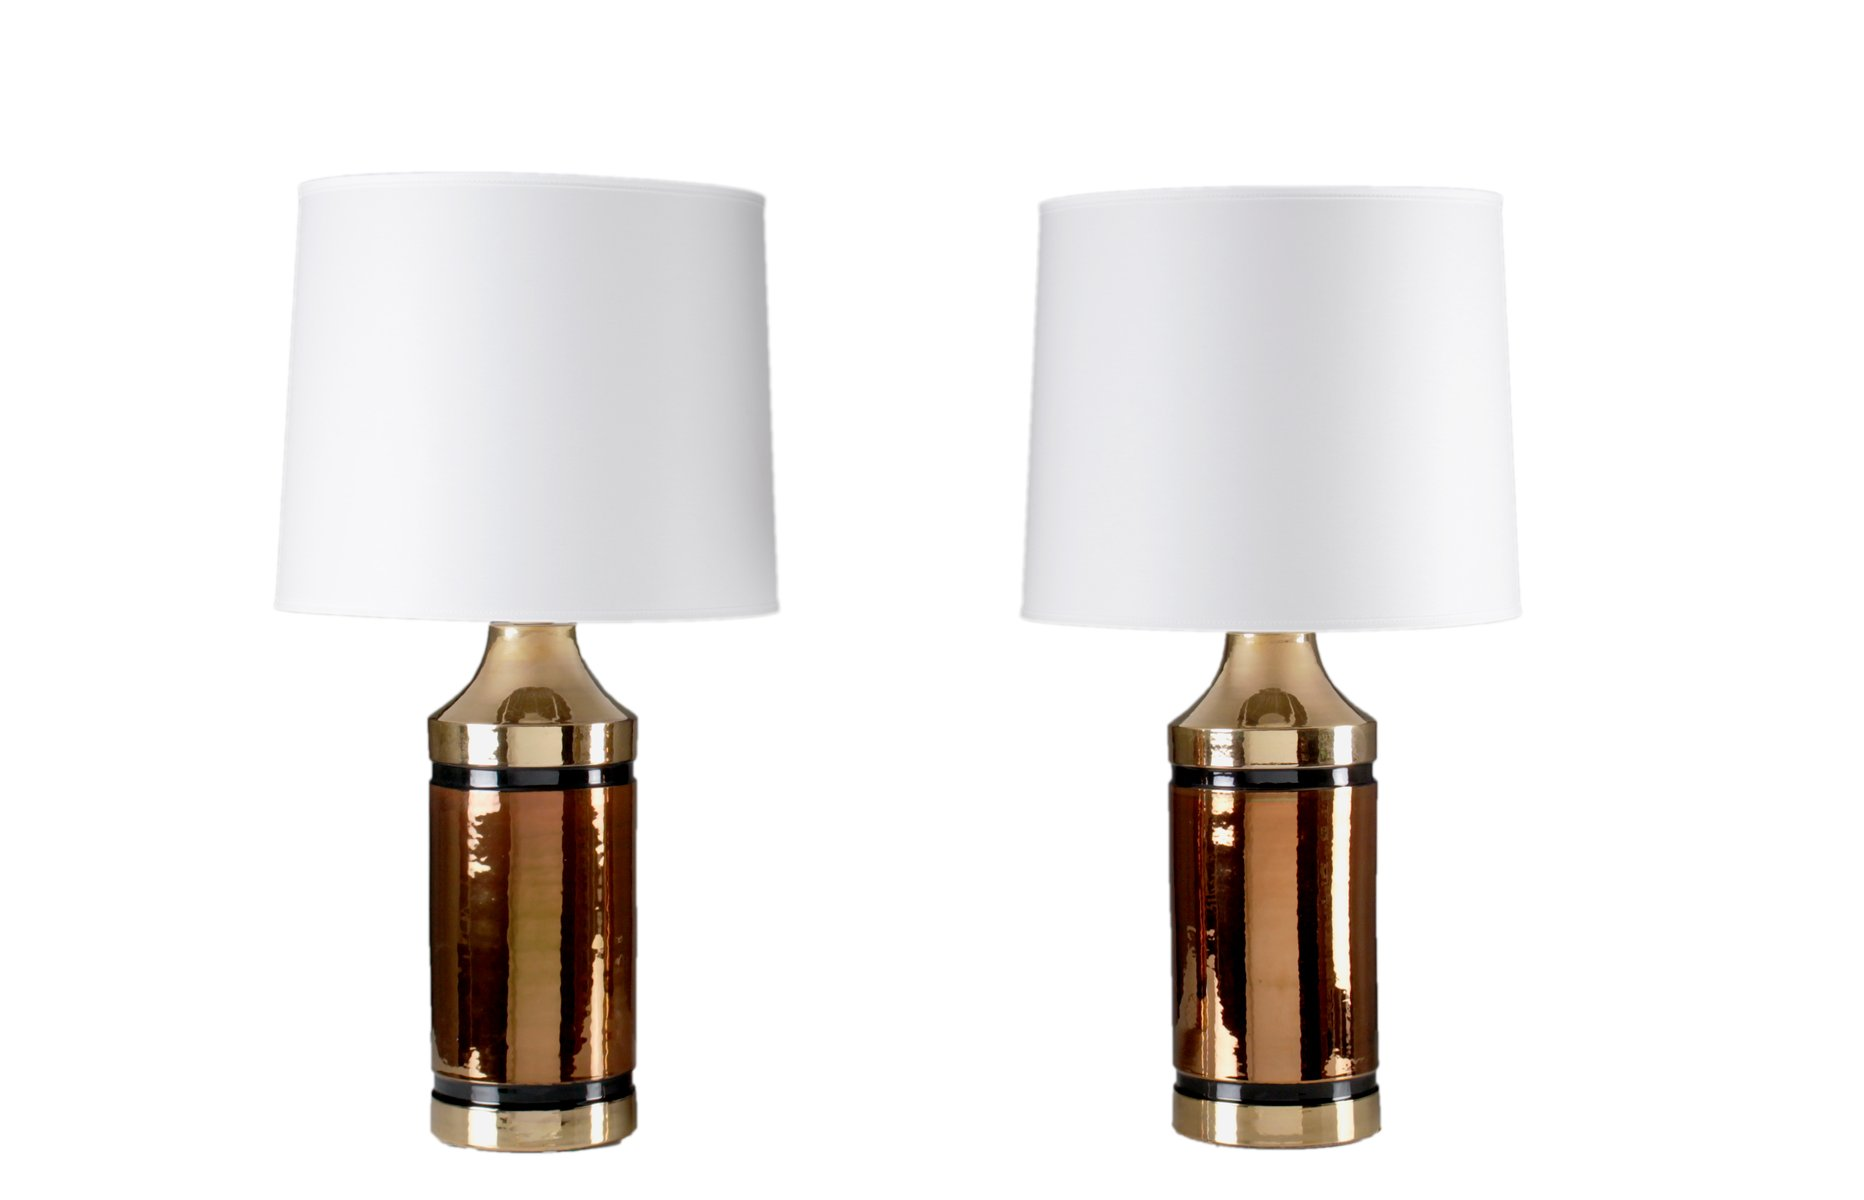 Glazed ceramic table lamps by bitossi for bergbom set of 2 for sale glazed ceramic table lamps by bitossi for bergbom set of 2 audiocablefo